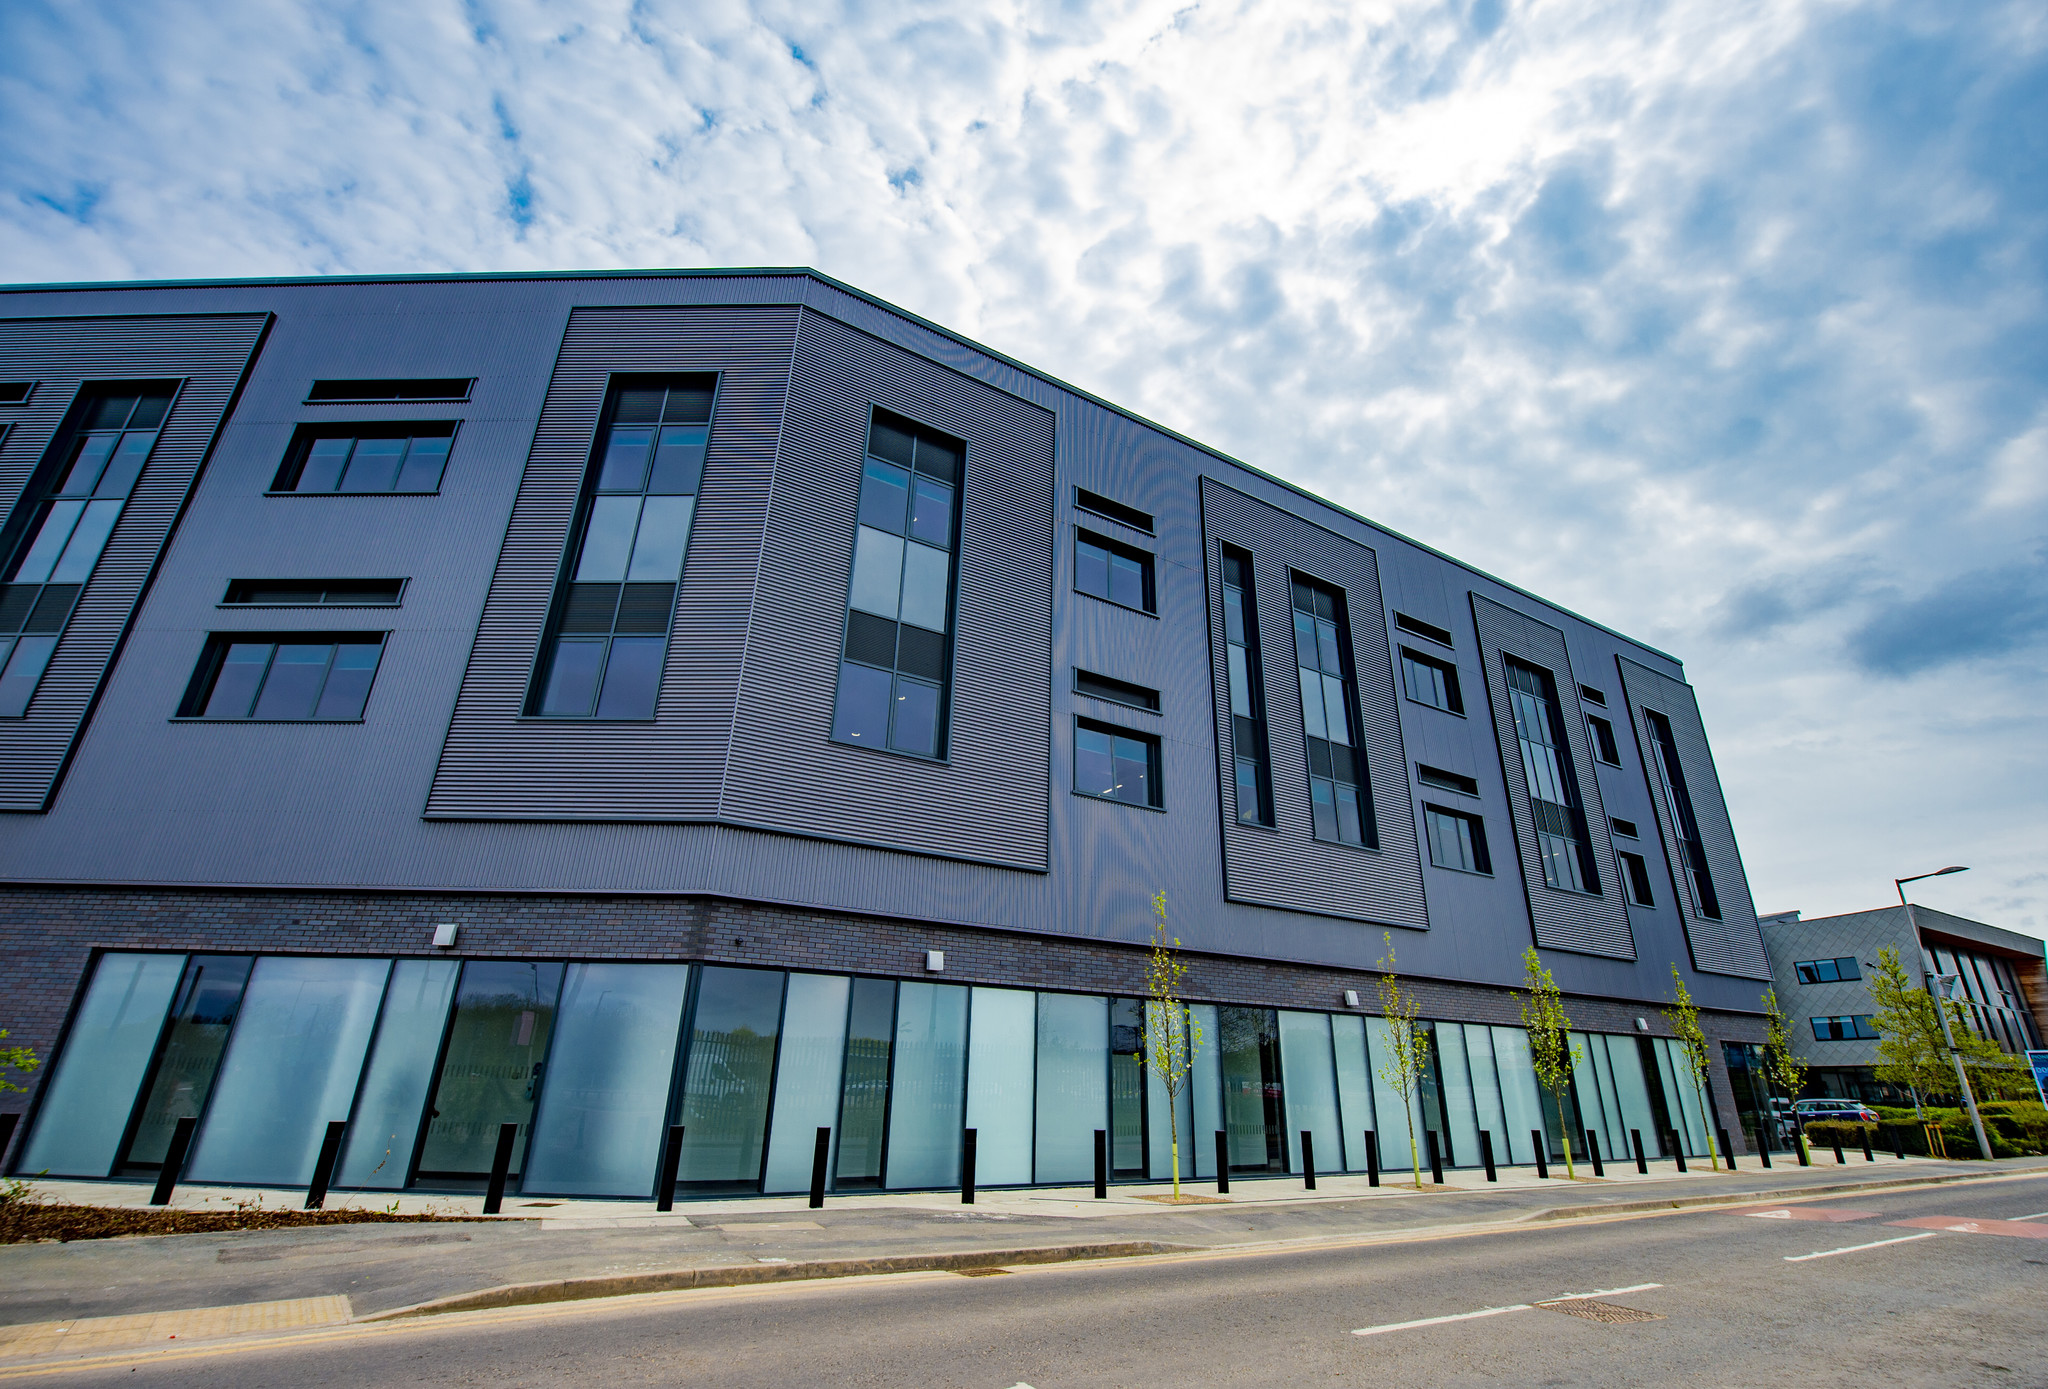 STEPNELL CEMENTS CLIENT RELATIONSHIPS WITH NEW COMMERCIAL BUILDS